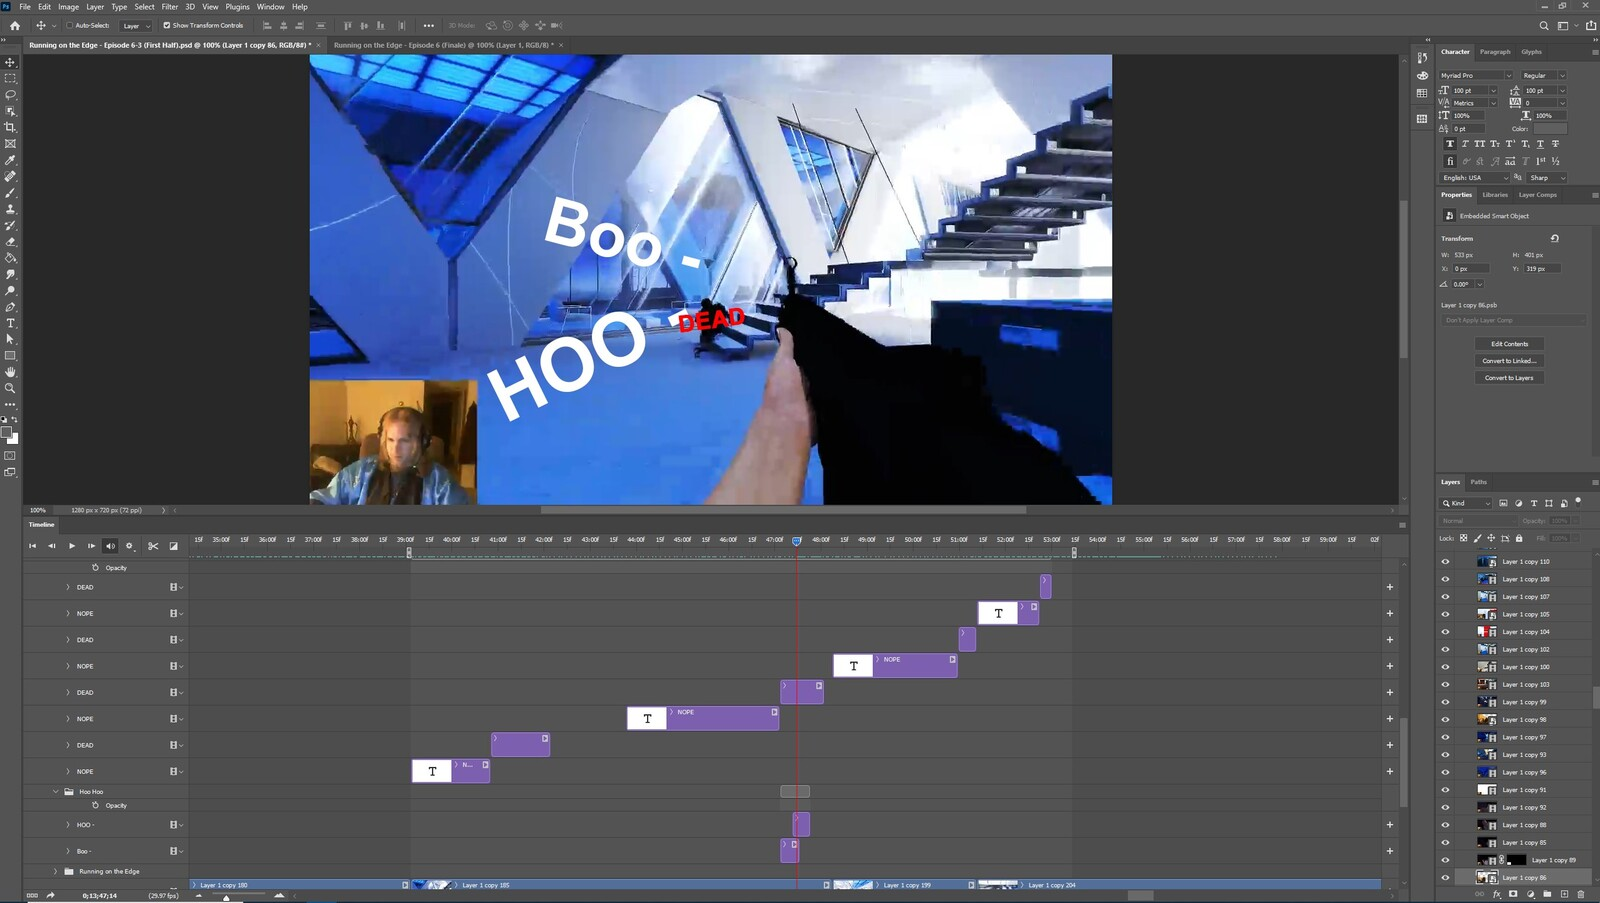 """The """"End of the NOPE Squad"""" visual effect within Photoshop video editor"""